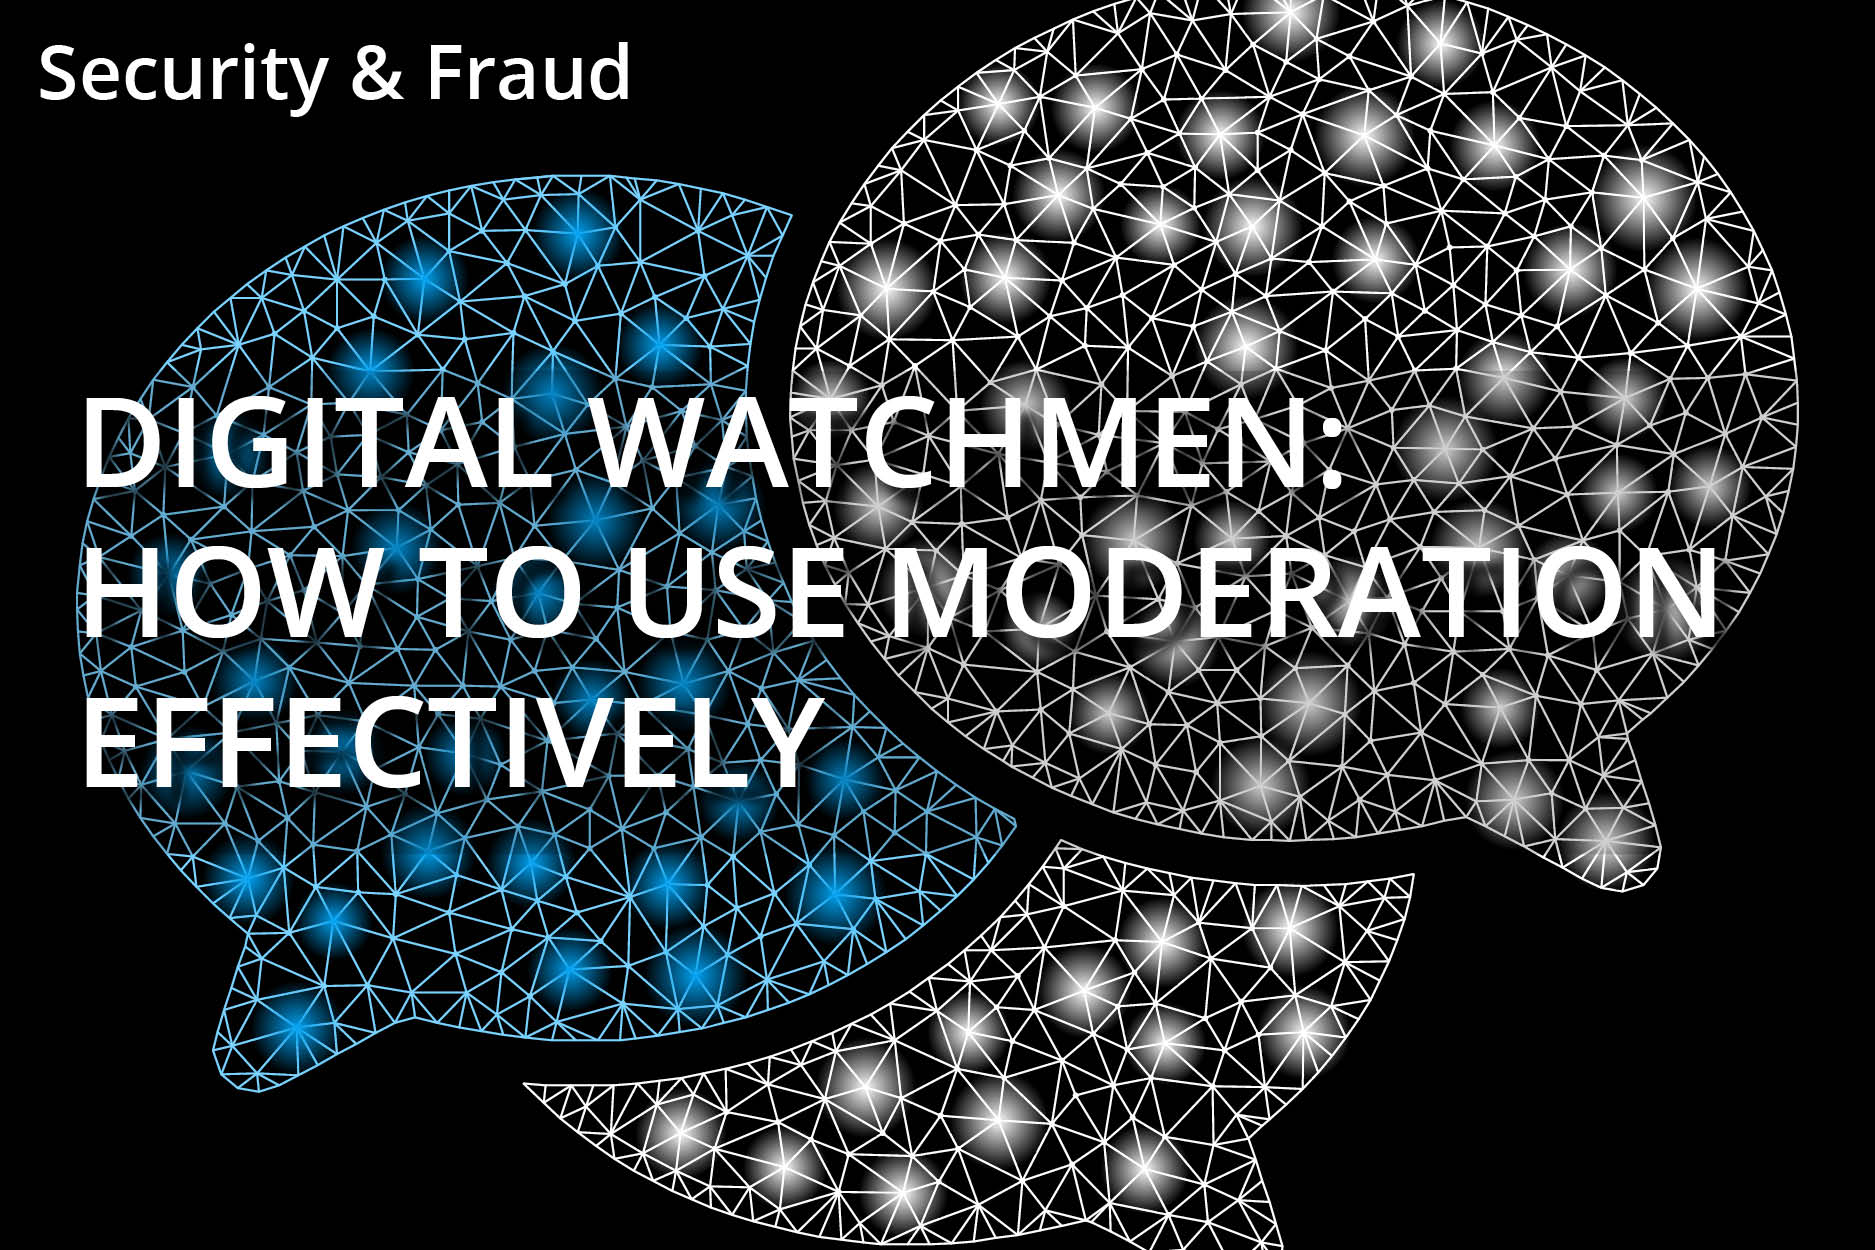 Digital Watchmen: How To Use Moderation Effectively